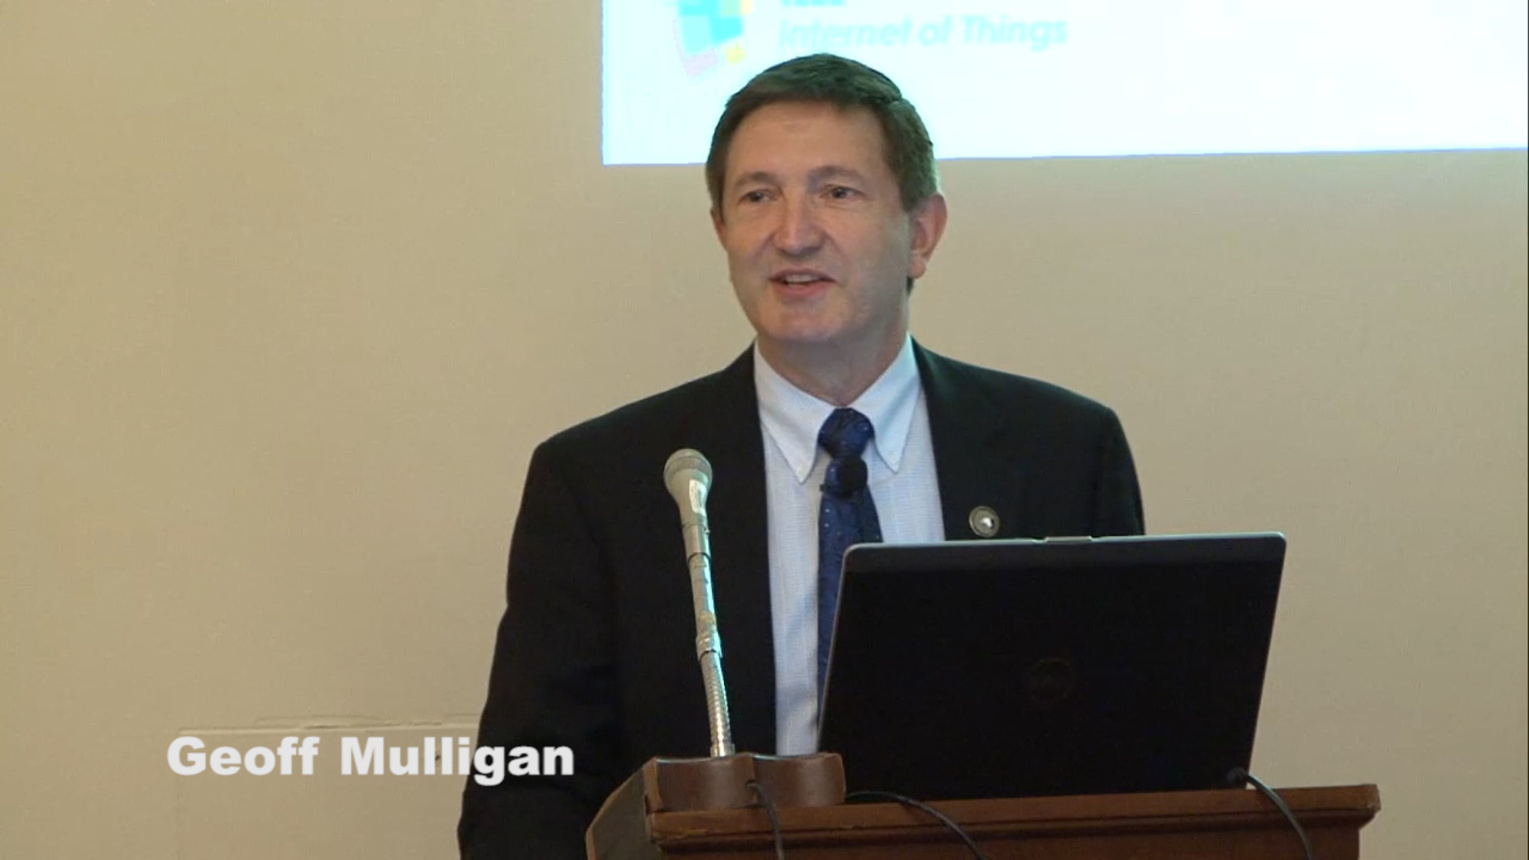 Net Neutrality Briefing - Geoff Mulligan - IoT Washington DC 2015